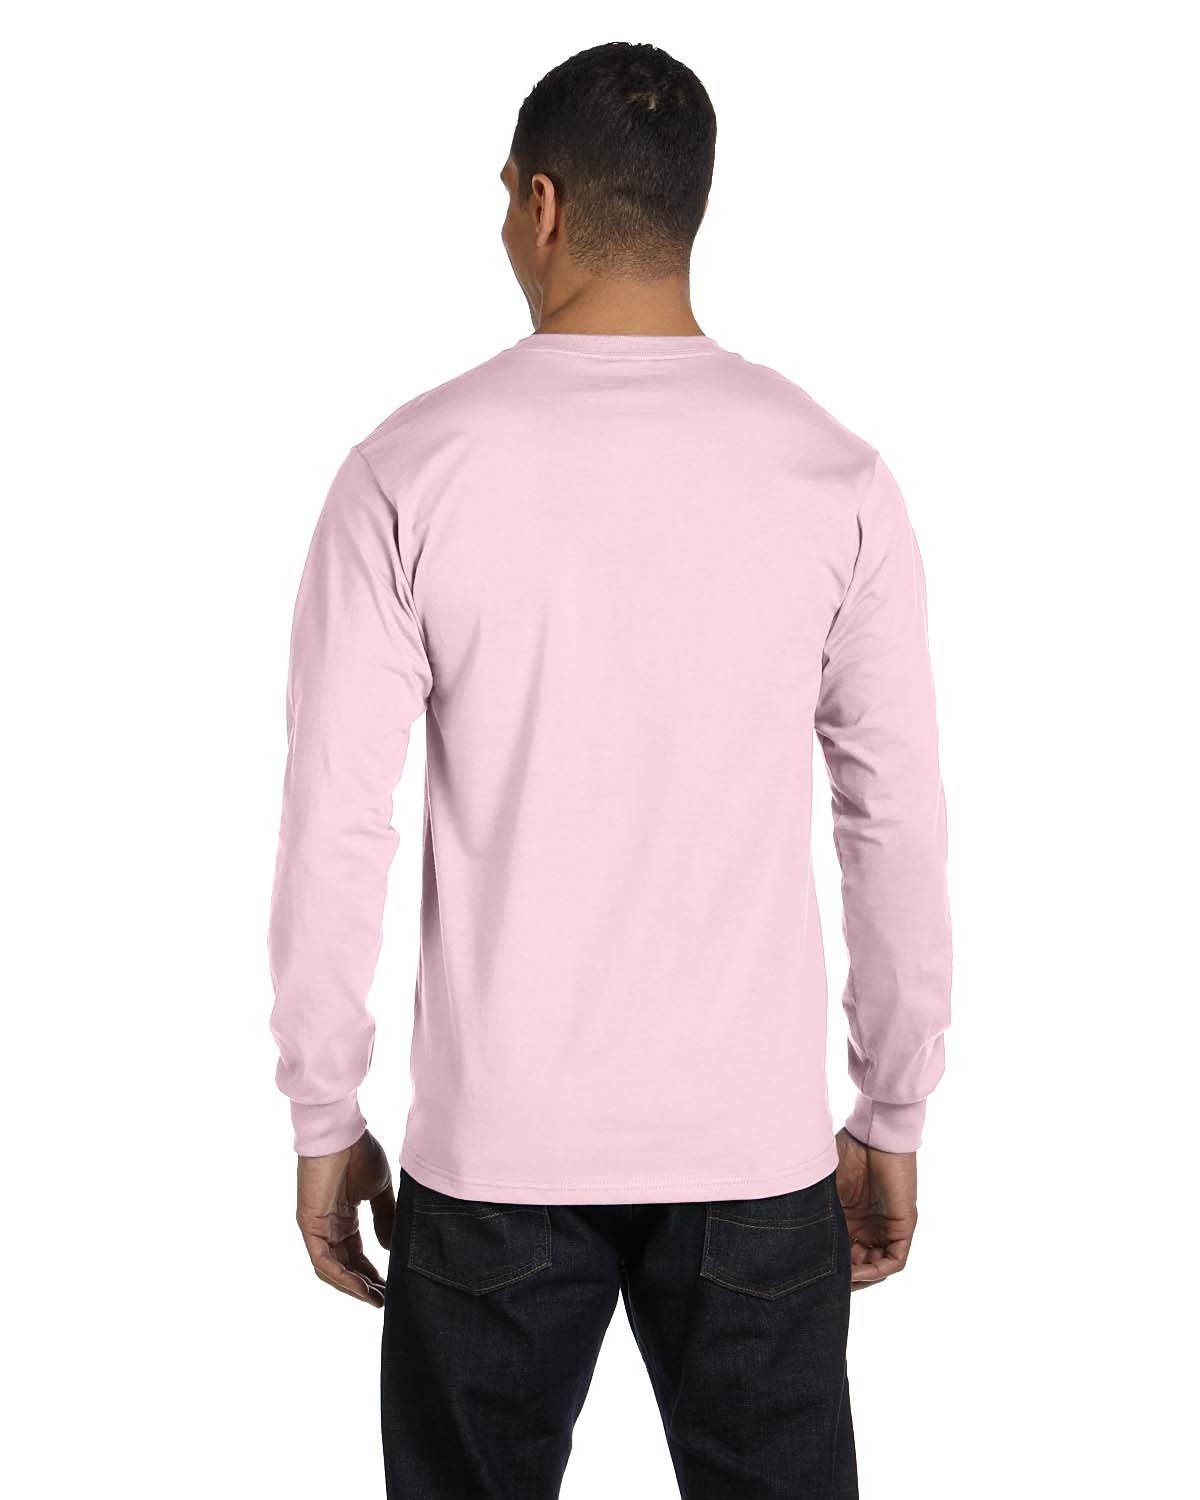 5186 Hanes PALE PINK